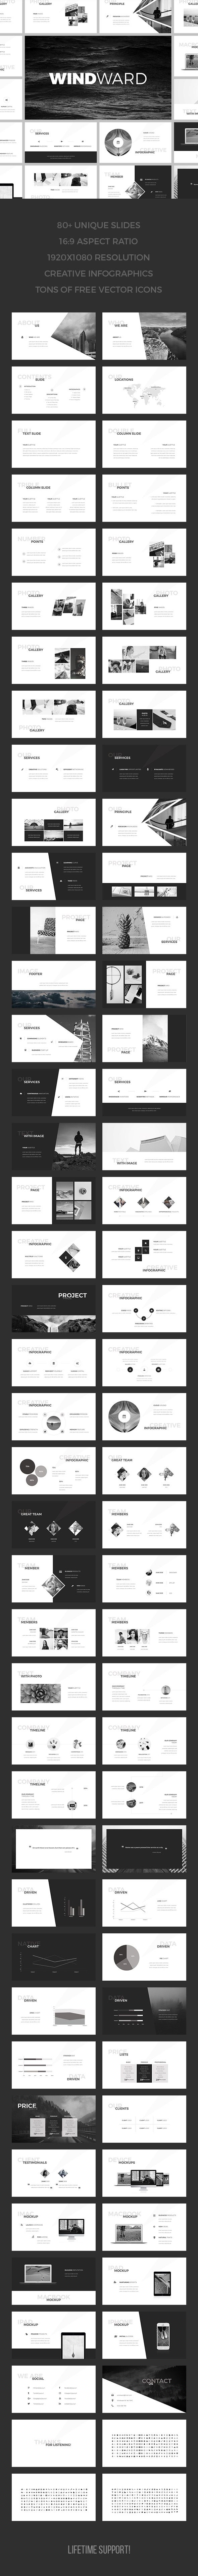 206 best power point images on pinterest keynote template ppt windward powerpoint template powerpoint templates toneelgroepblik